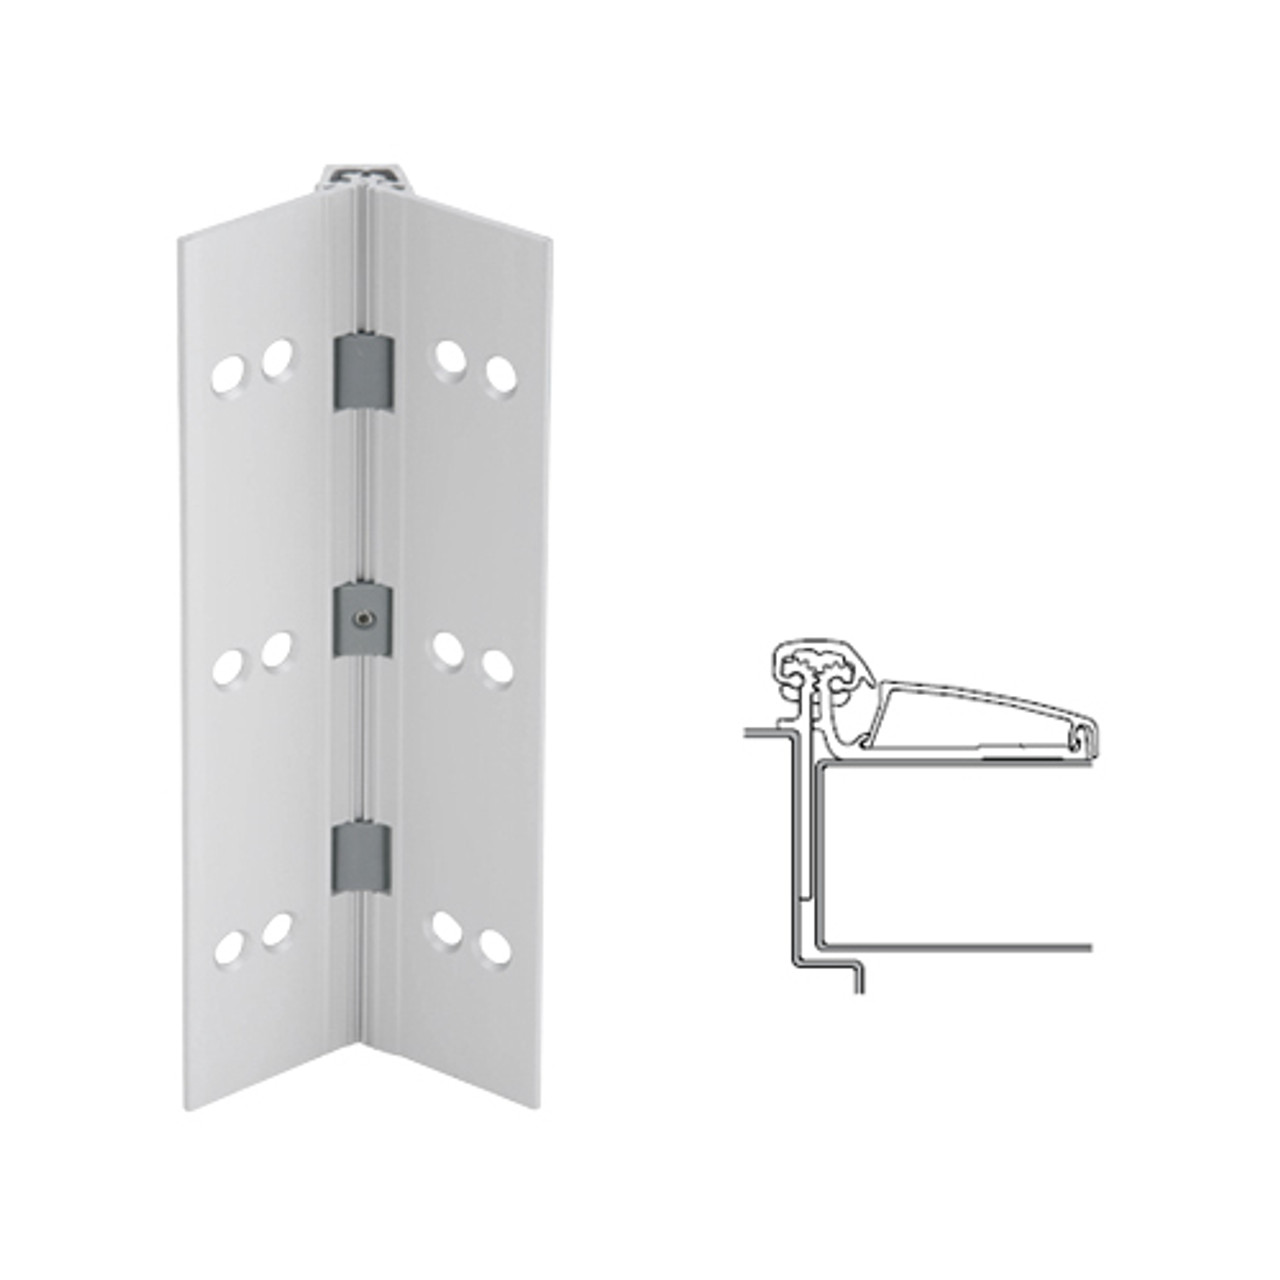 045XY-US28-95-TF IVES Adjustable Half Surface Continuous Geared Hinges with Thread Forming Screws in Satin Aluminum